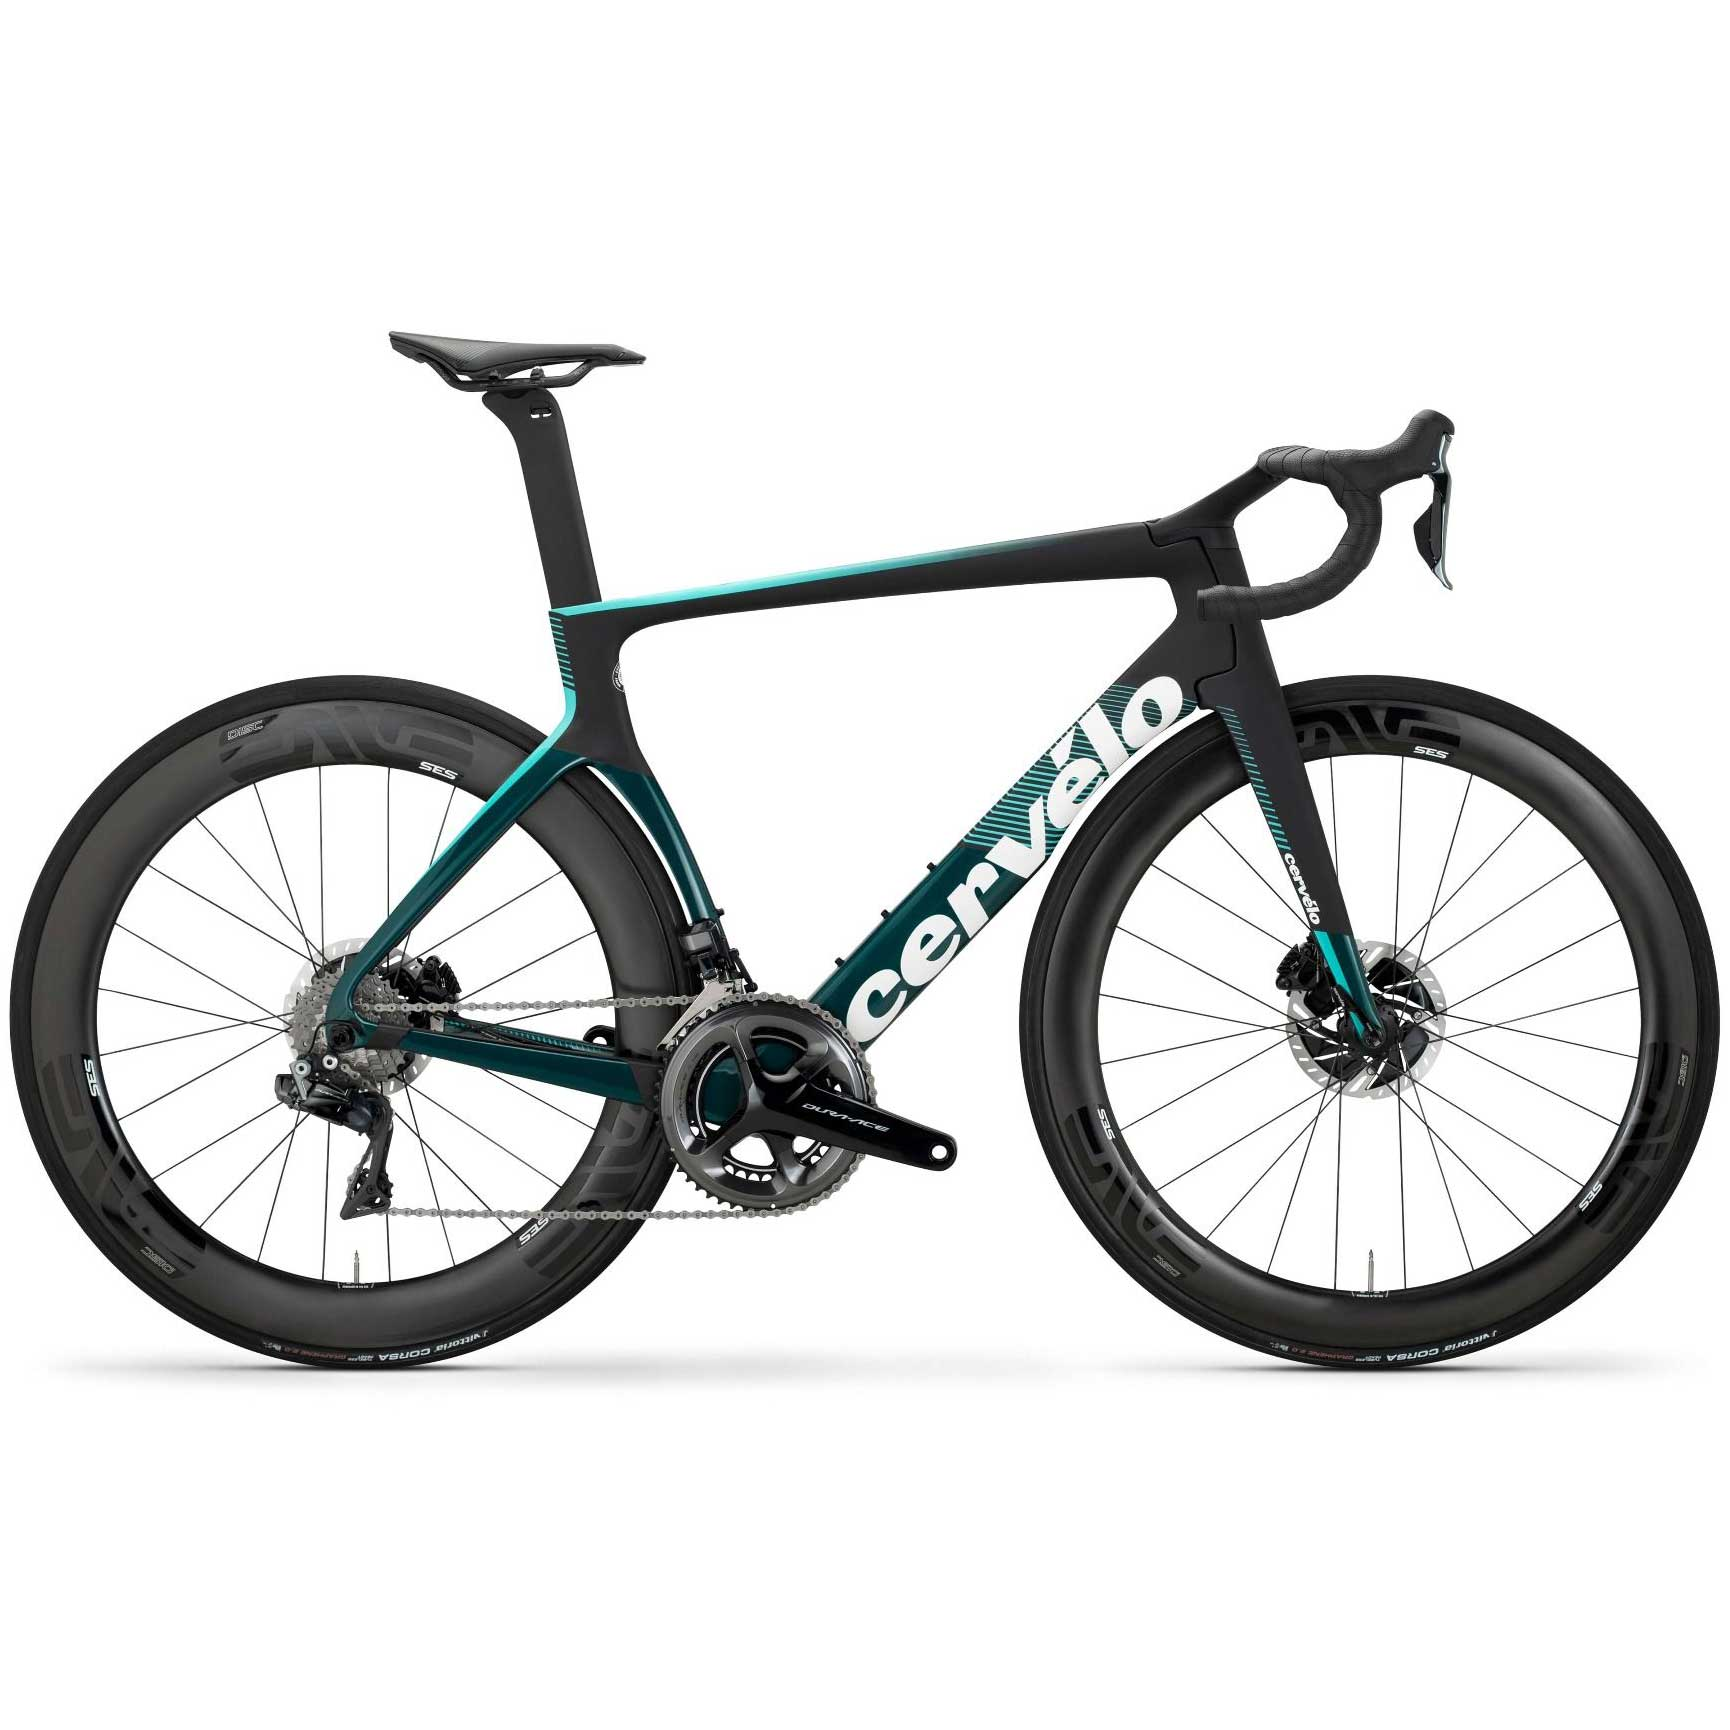 Cervelo S5 Disc Dura Ace Di2 Road Bike